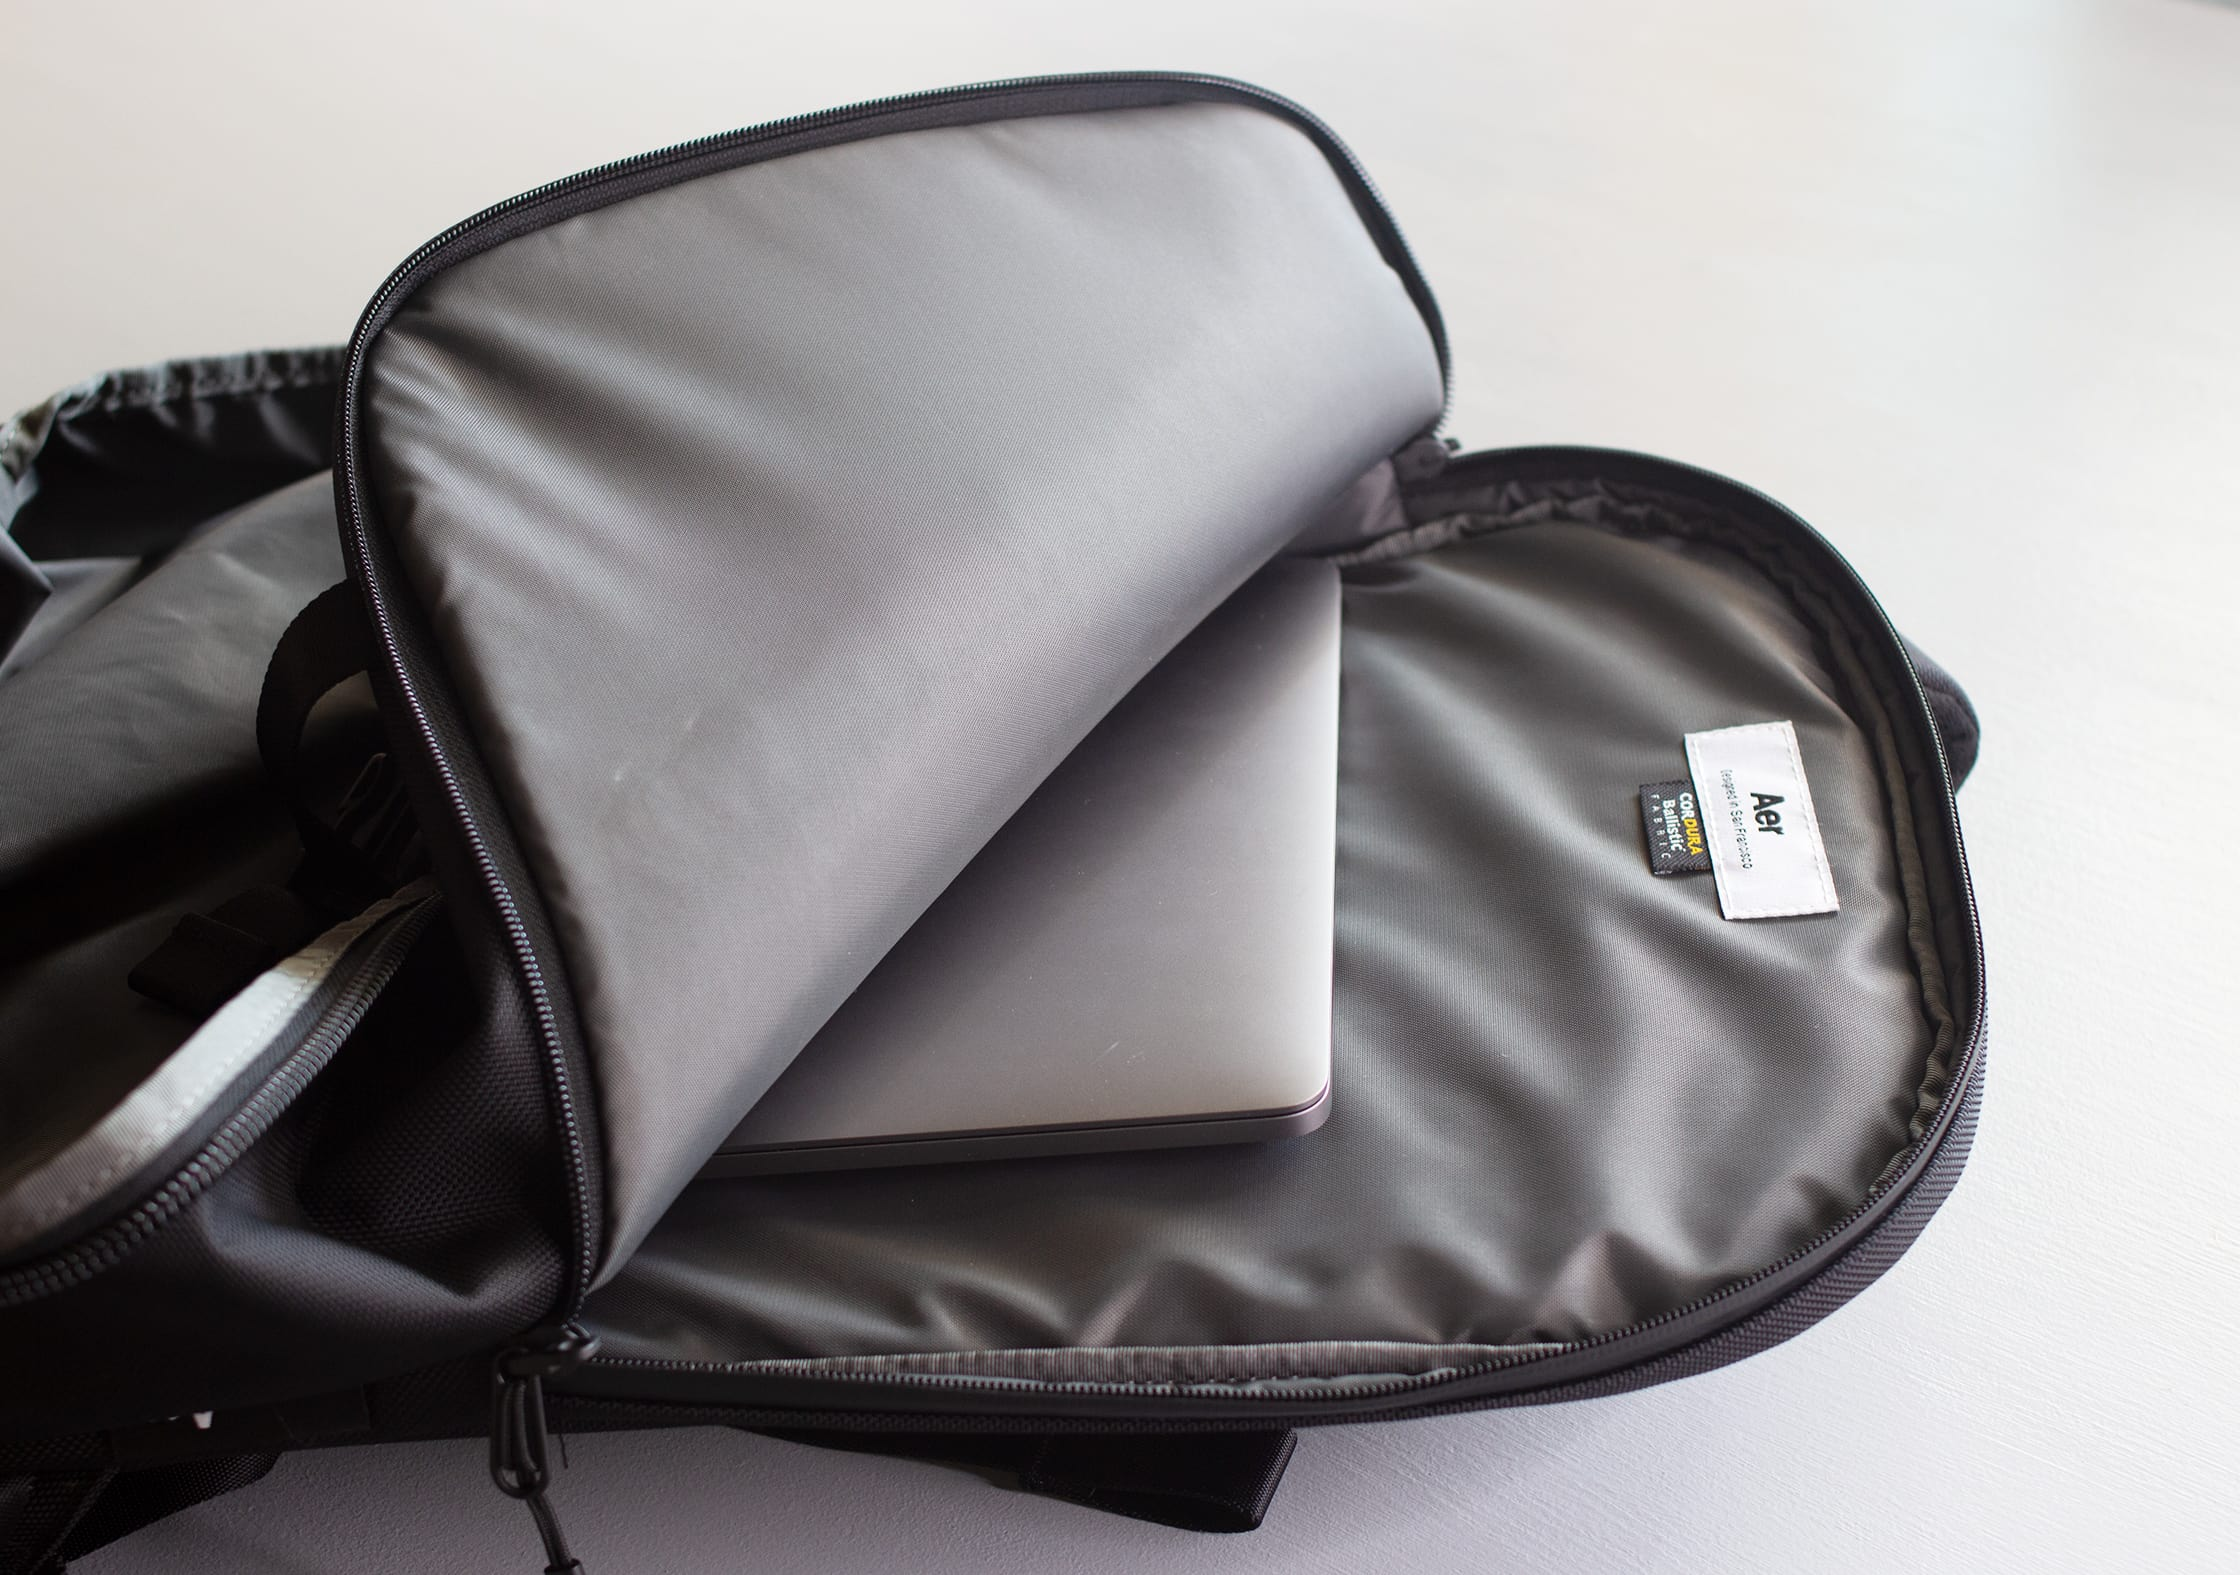 Aer Travel Pack 2 Laptop Compartment